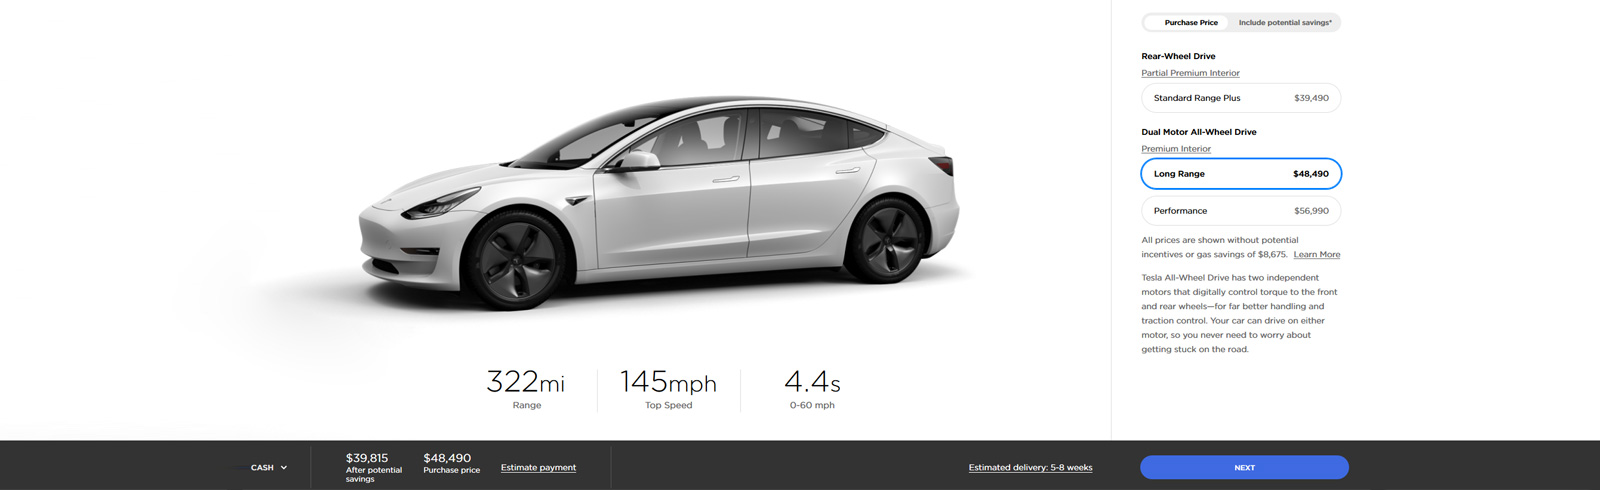 Tesla Model 3 price increases with $1,000 in the US and €1,000 in the EU